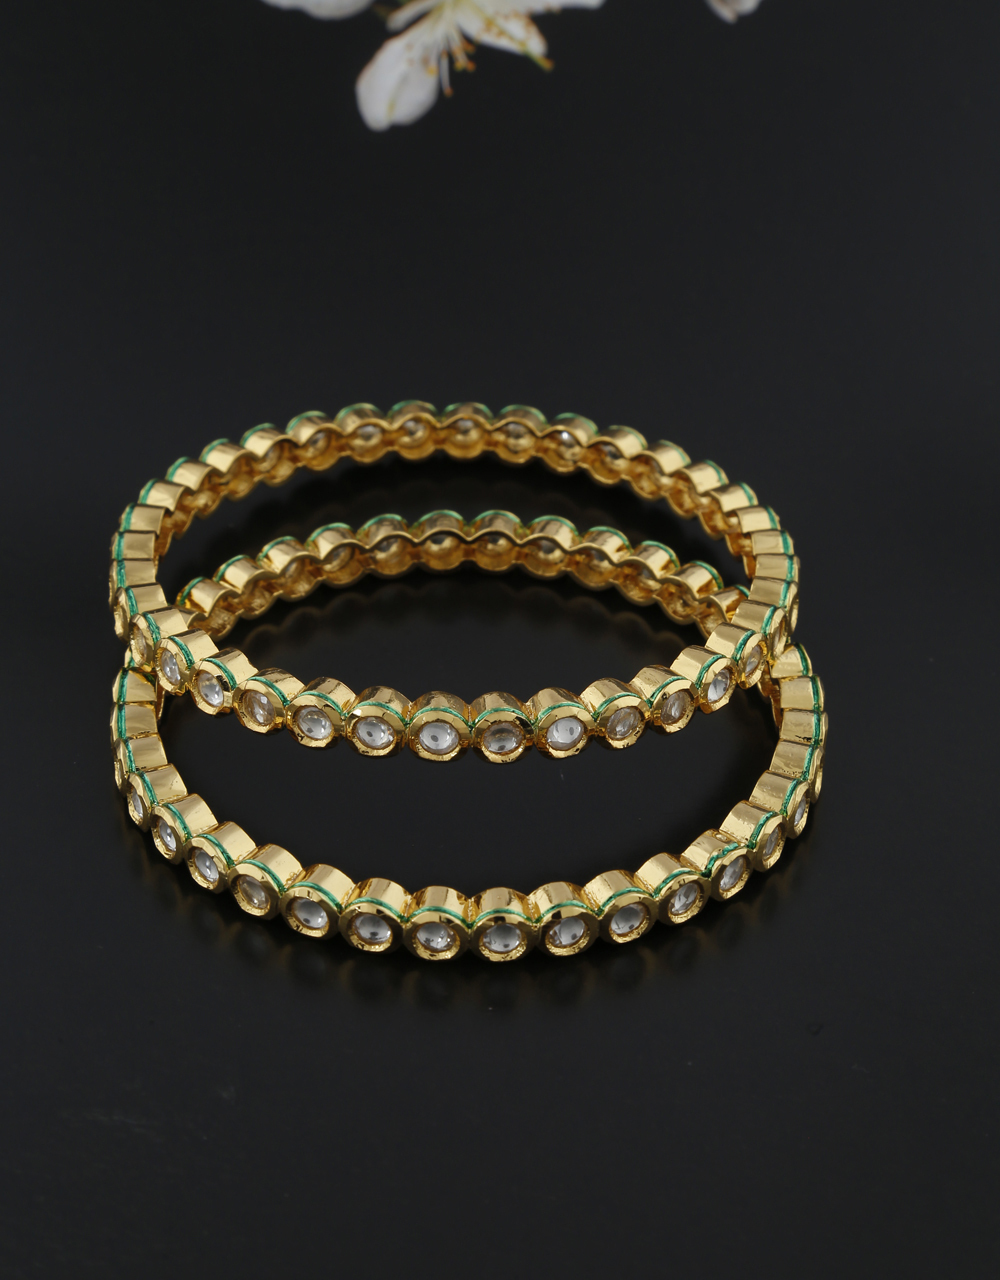 Round designer bangle with classy look studded with shining kundan bangles for women